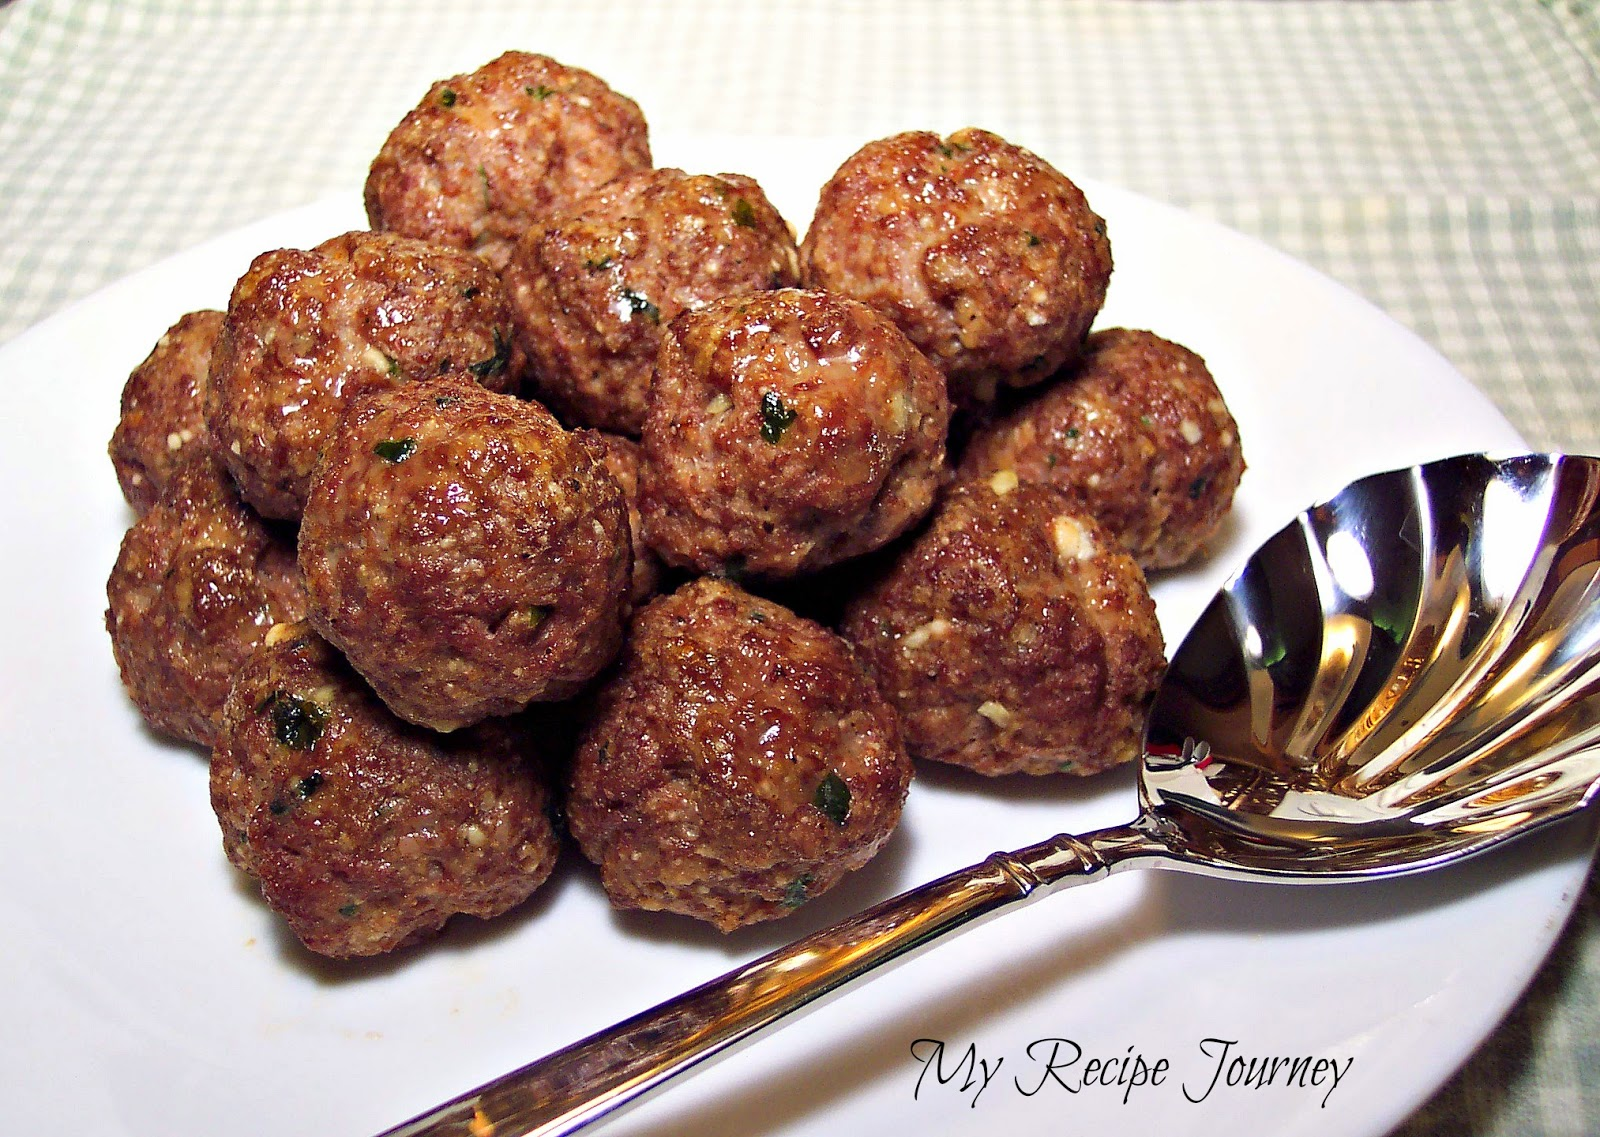 Old Fashioned Classic Italian Meatballs - Family Recipe